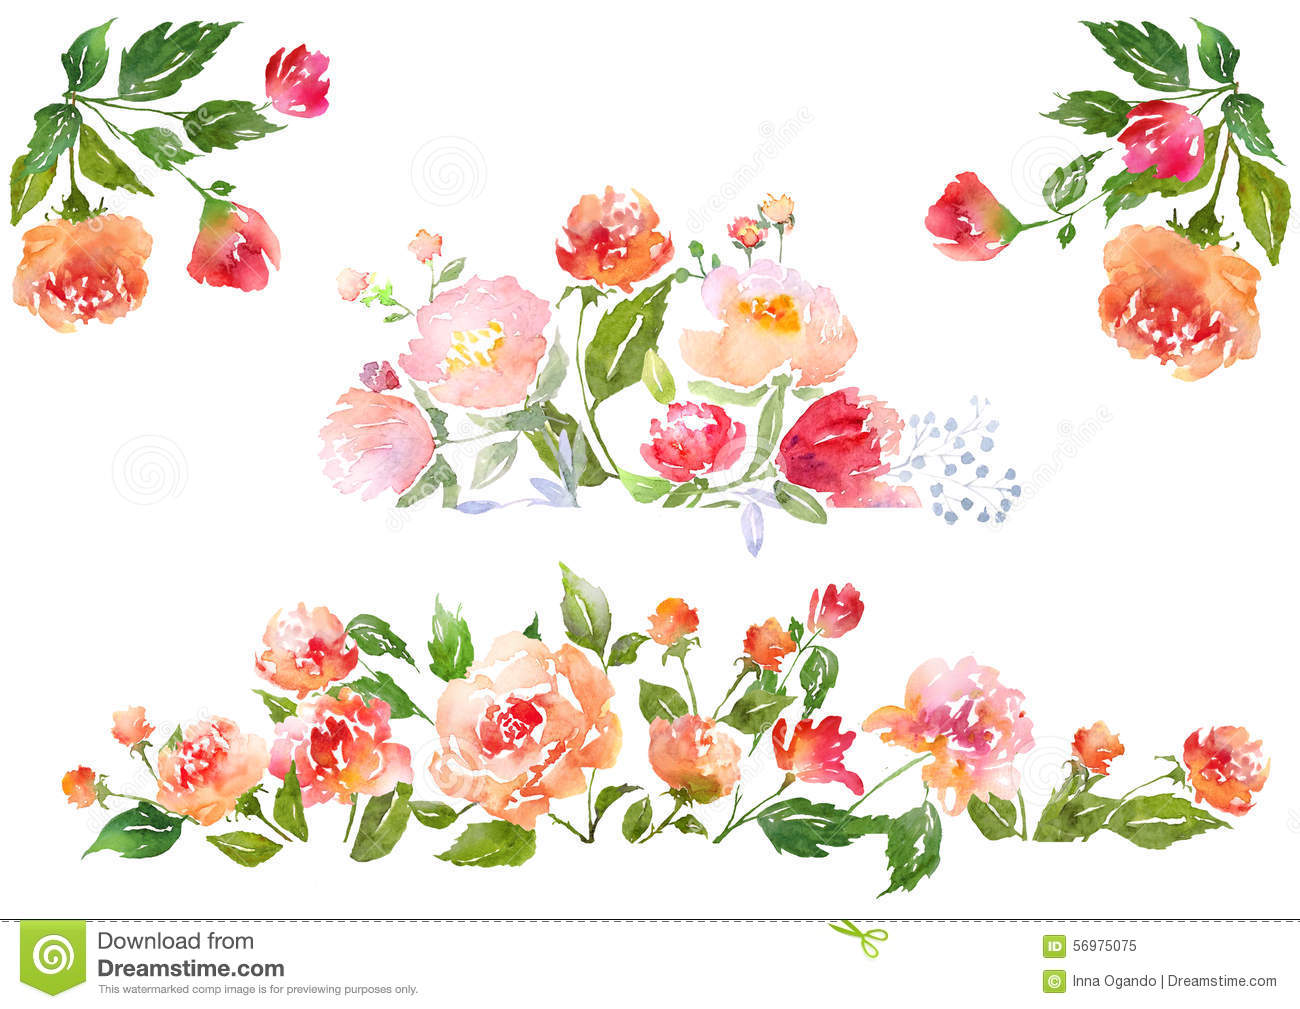 Free Watercolor Floral Clipart.